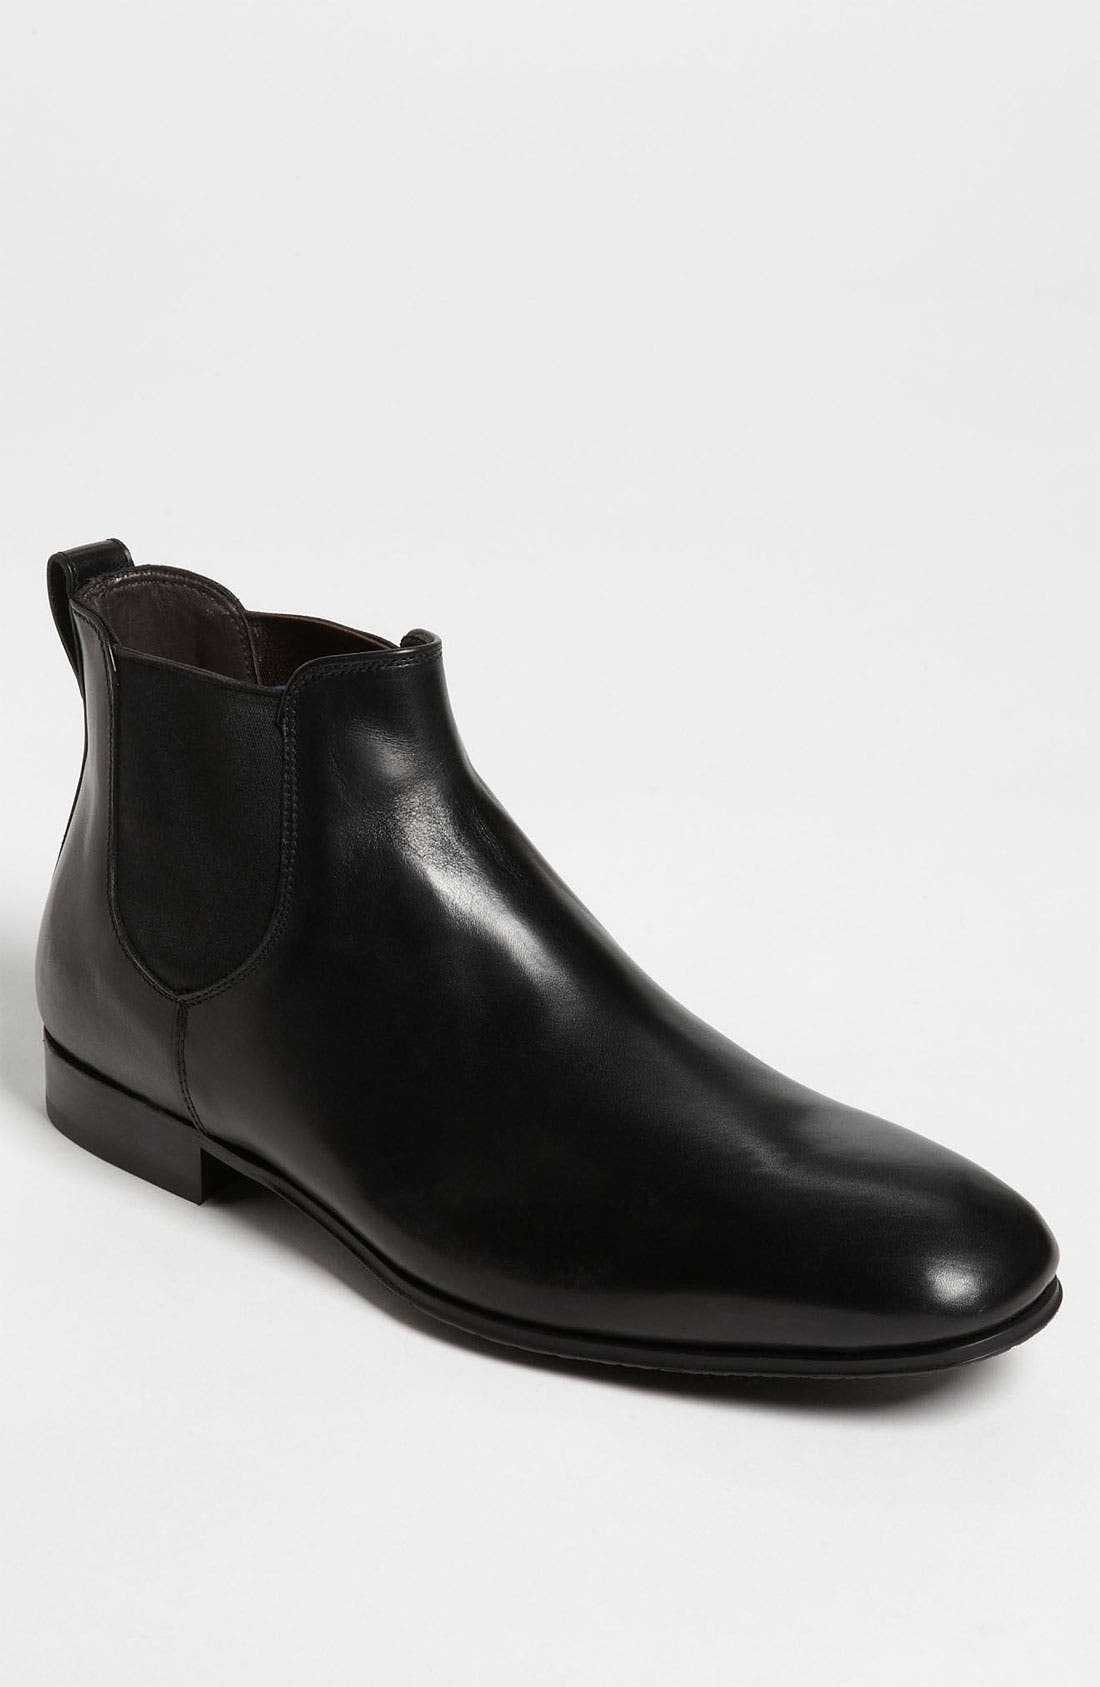 Main Image - To Boot New York 'Luke' Chelsea Boot